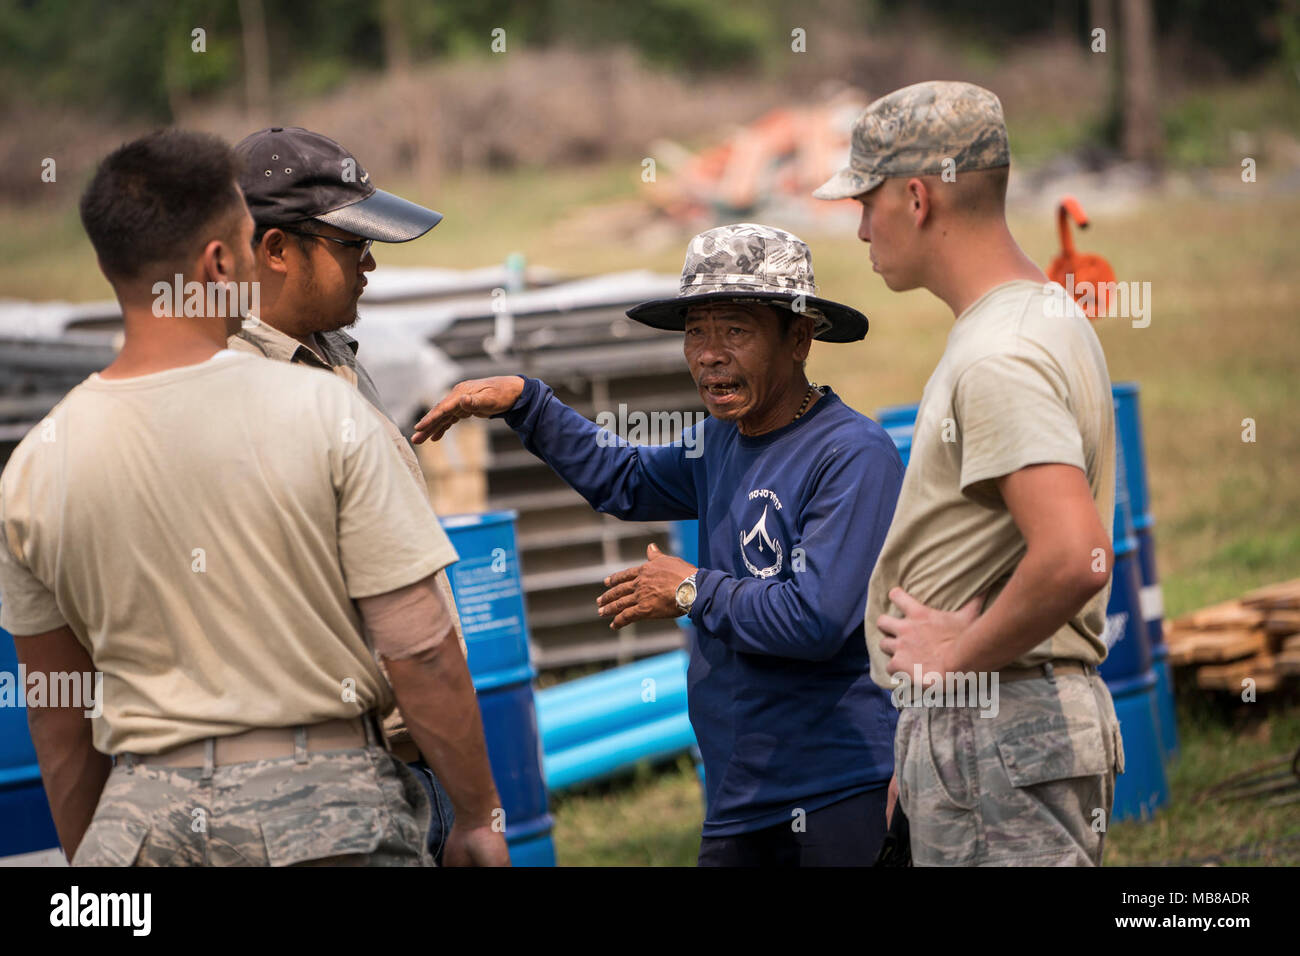 492cefb2a73ac A Royal Thai Air Force member speaks with U.S. Airmen from 18th Civil  Engineering Squadron